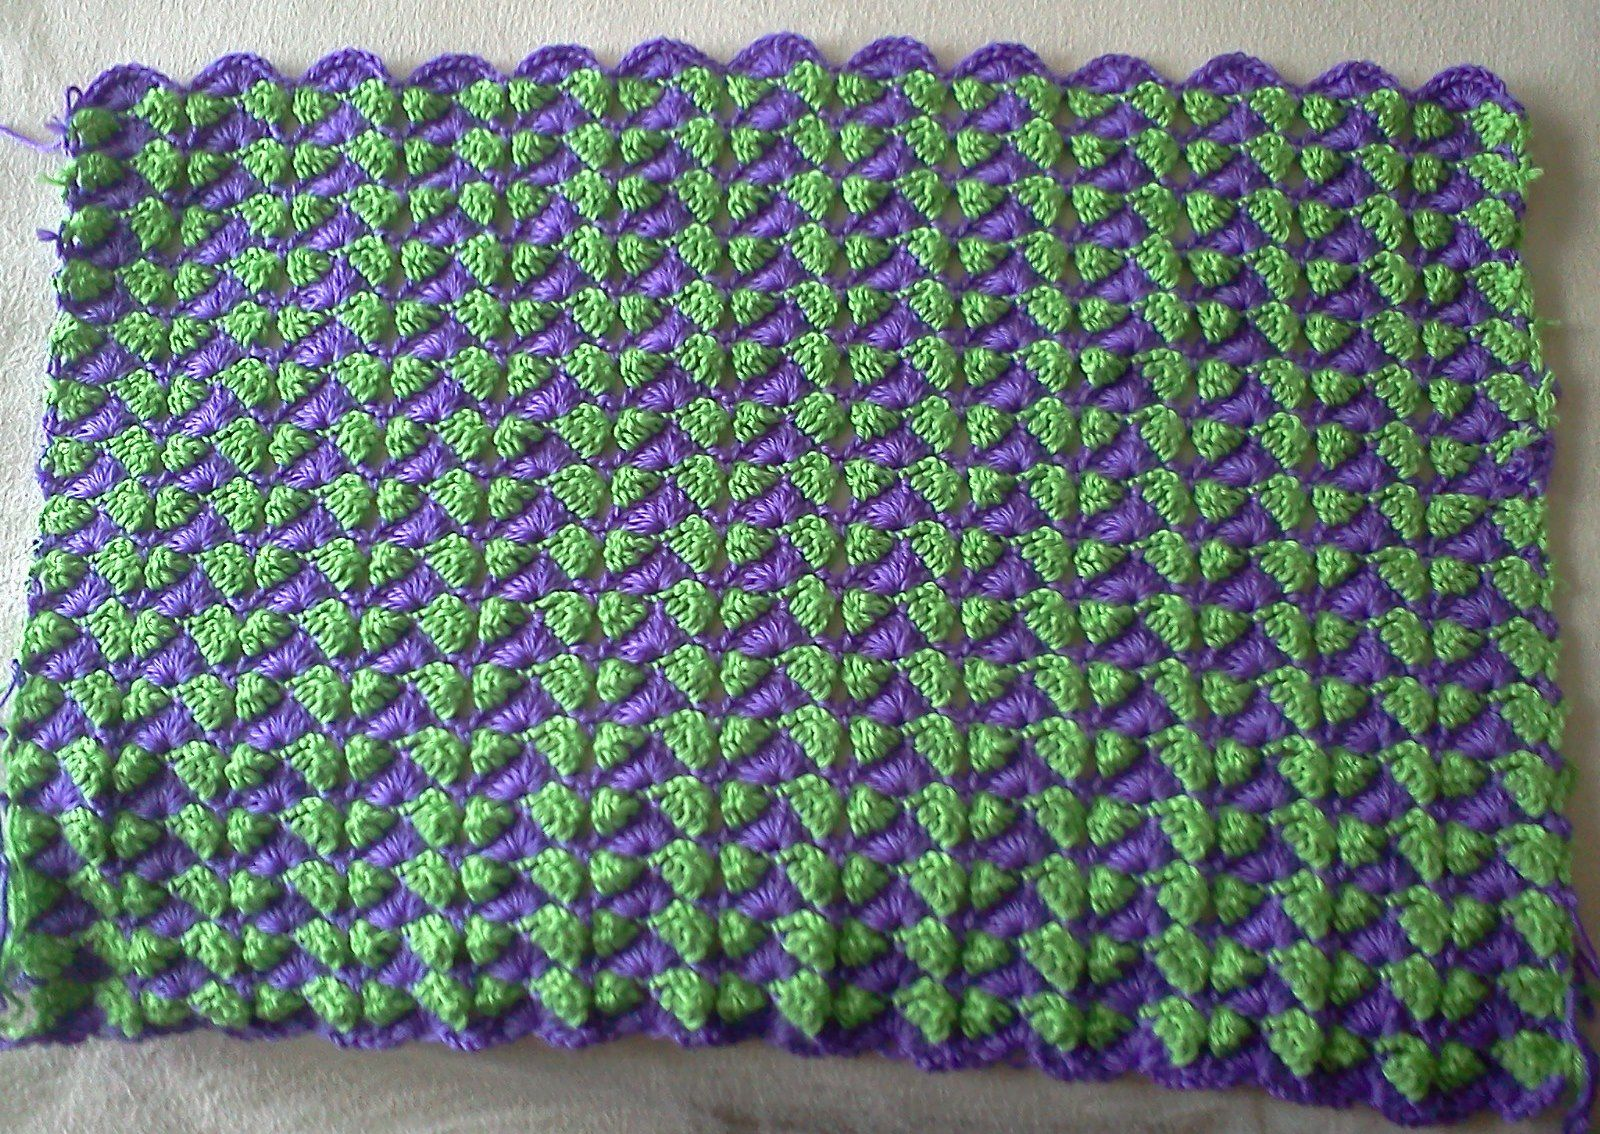 Crocheted afghan - grand daughter's choice side one.